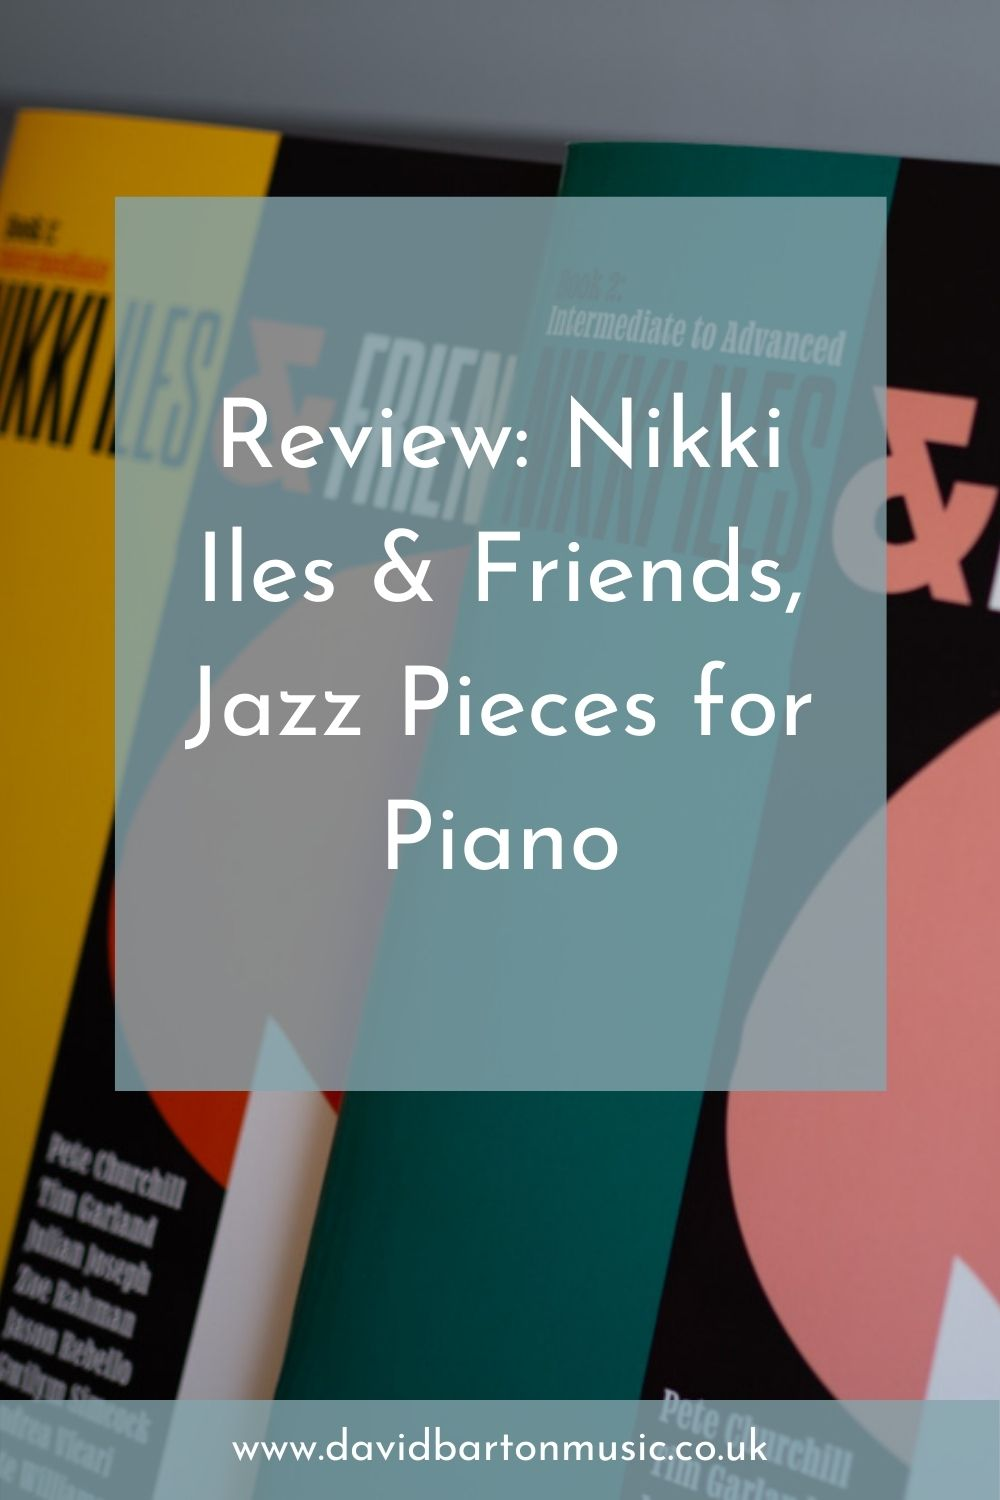 Review: Nikki Iles & Friends, Jazz Pieces for Piano - Pinterest graphic